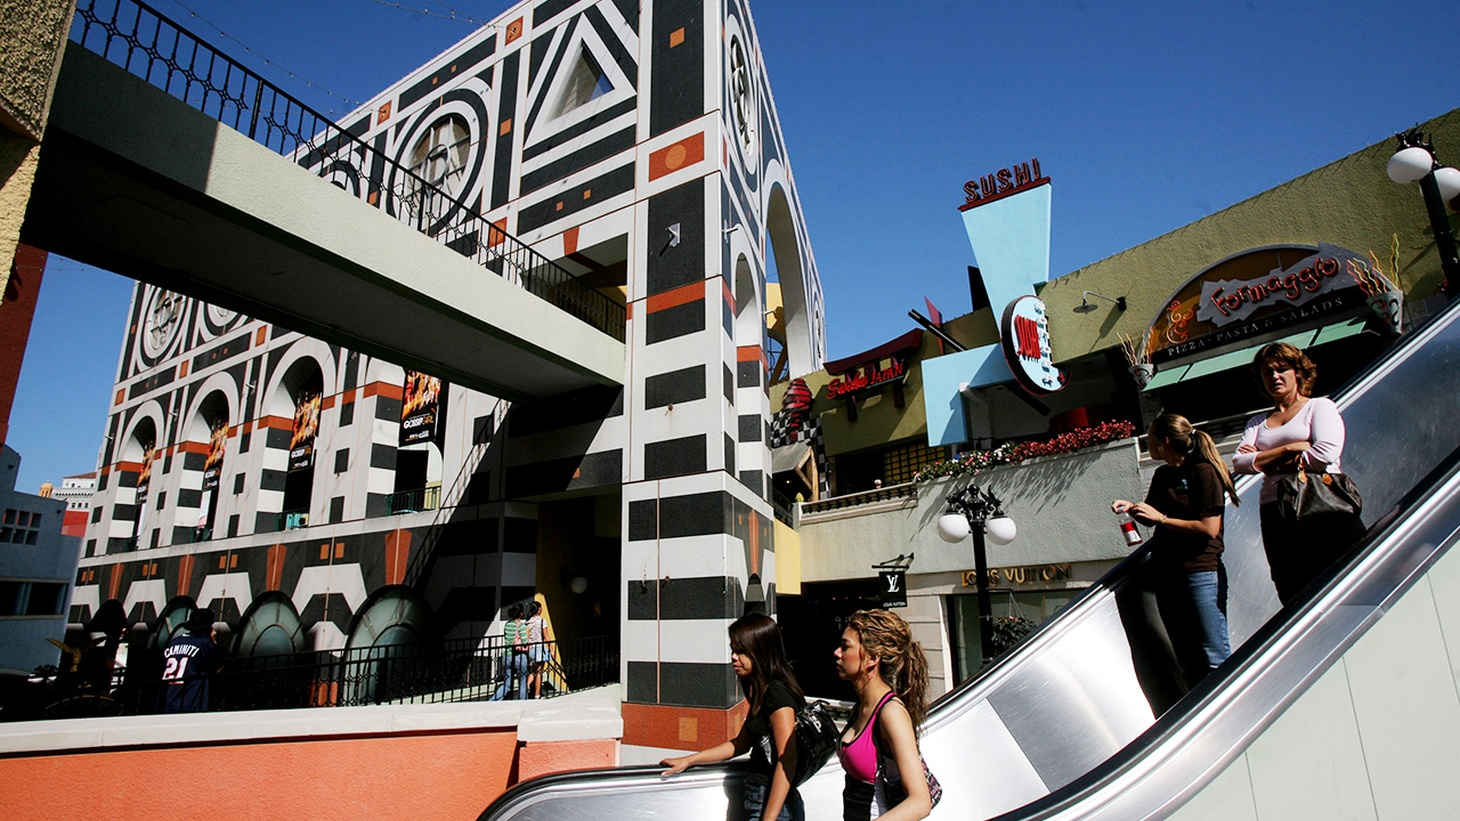 Horton Plaza was built in 1985 to revitalize downtown San Diego. Now Jon Jerde's postmodern icon is almost empty, awaiting change.